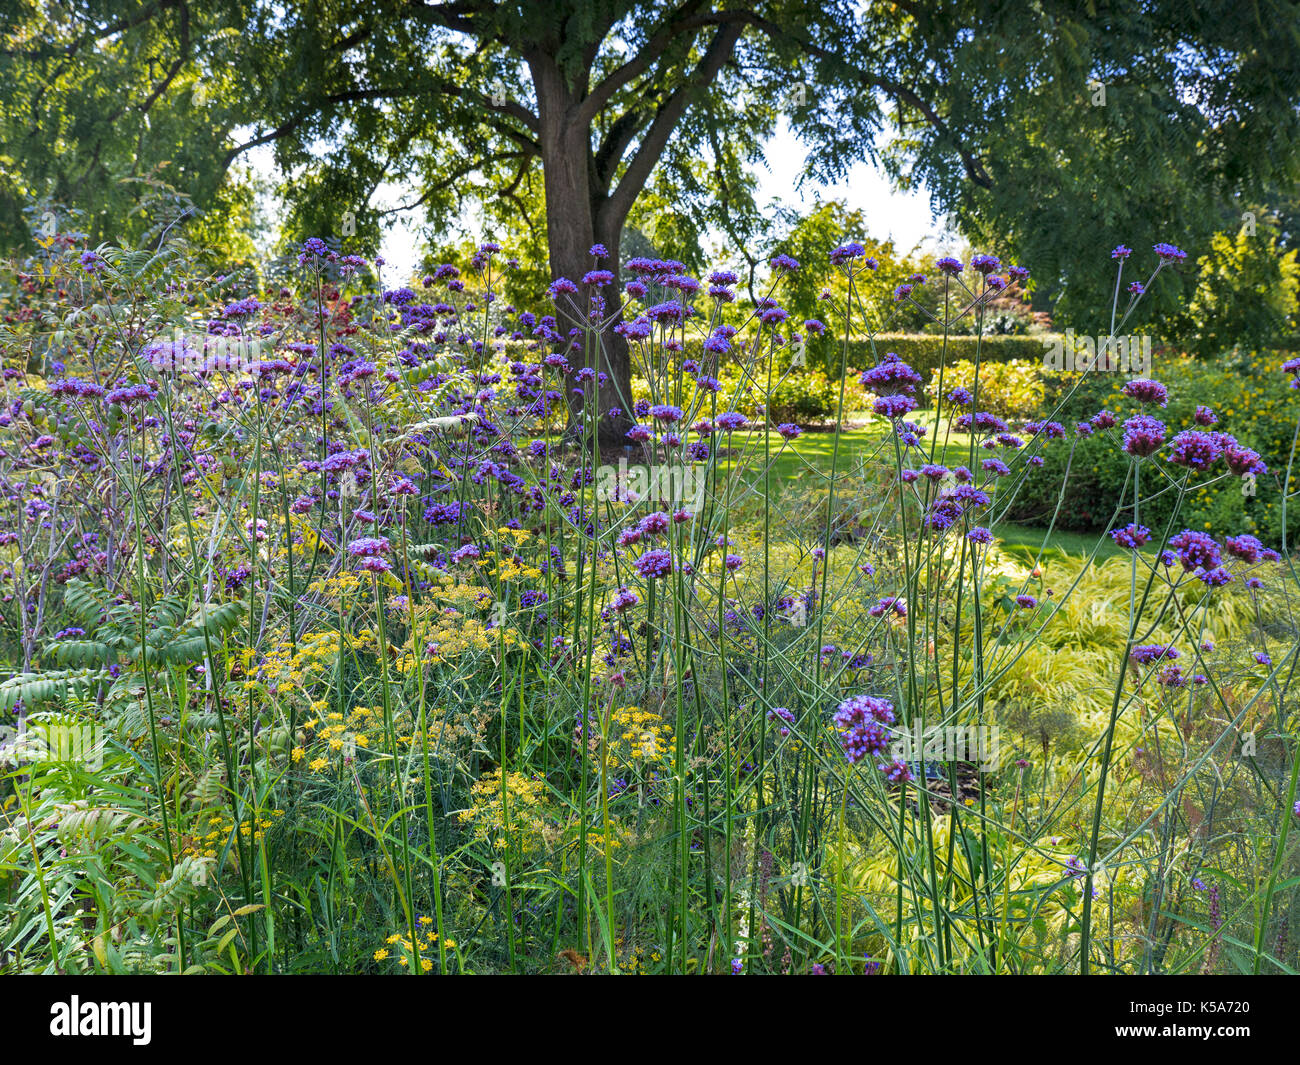 Verbena bonariensis a herbaceous tall slender stemmed perennial plant, in full bloom in a sunlit verdant garden - Stock Image